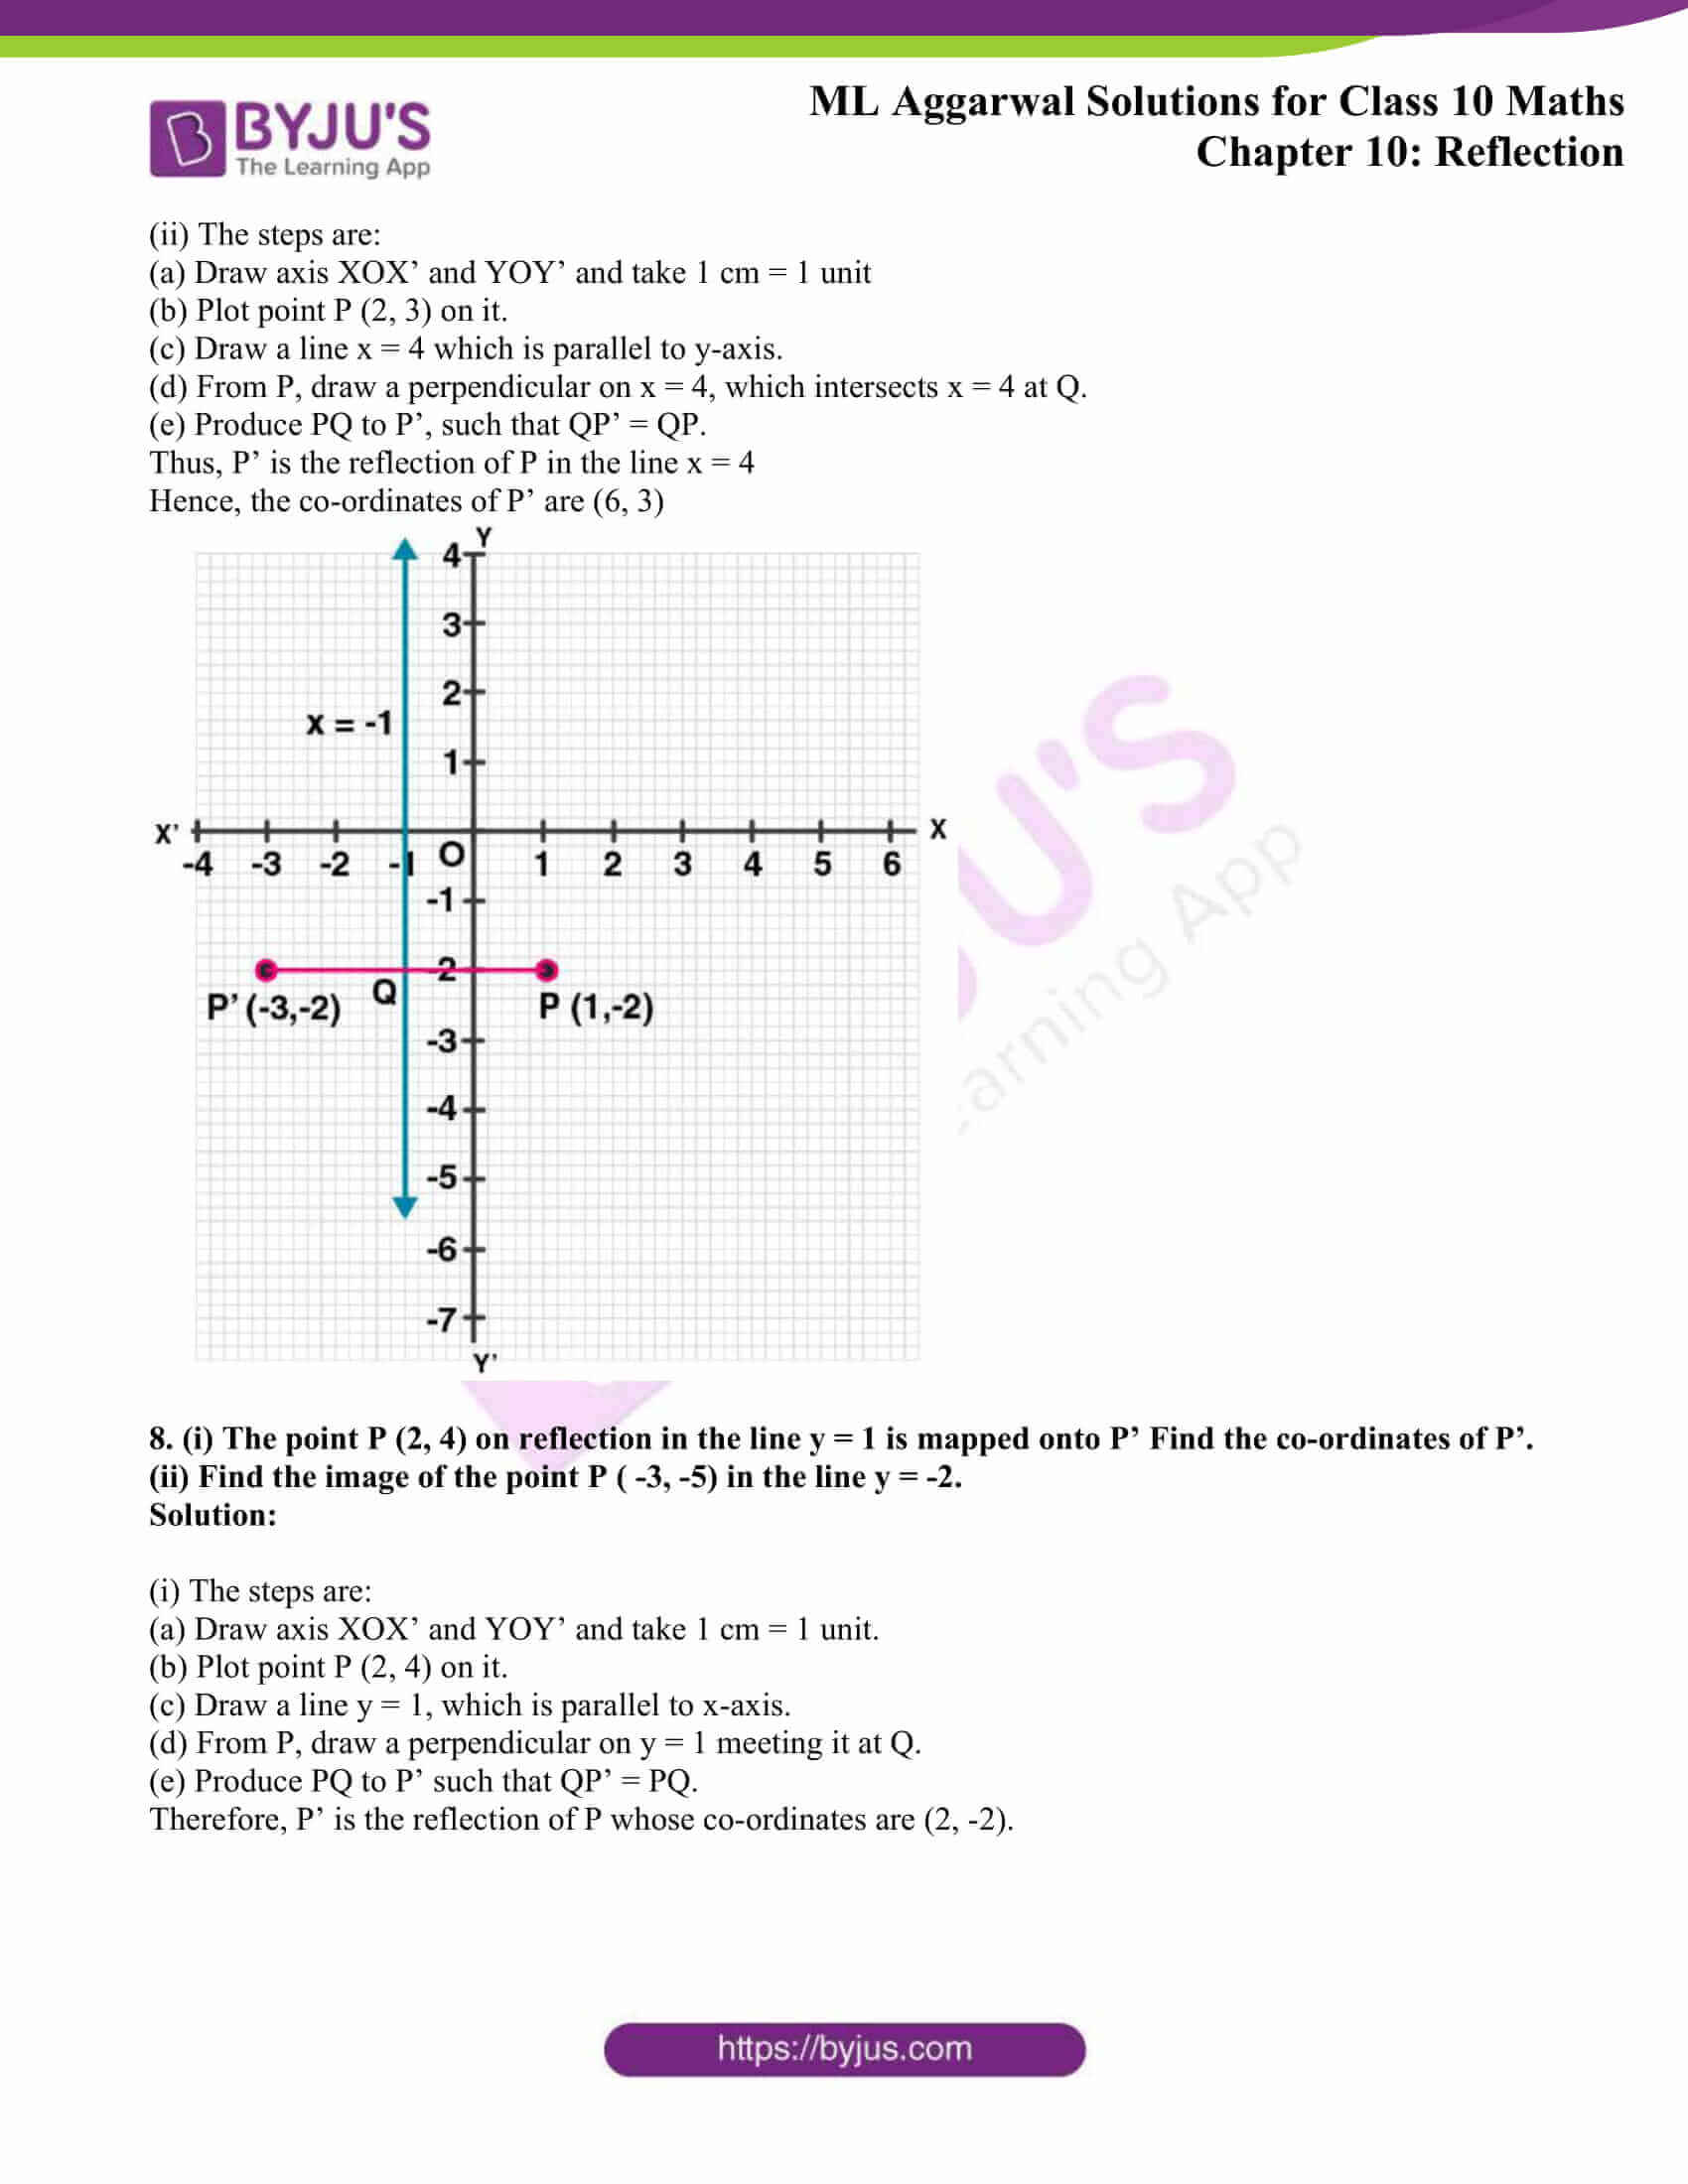 ml aggarwal solutions class 10 maths chapter 10 03